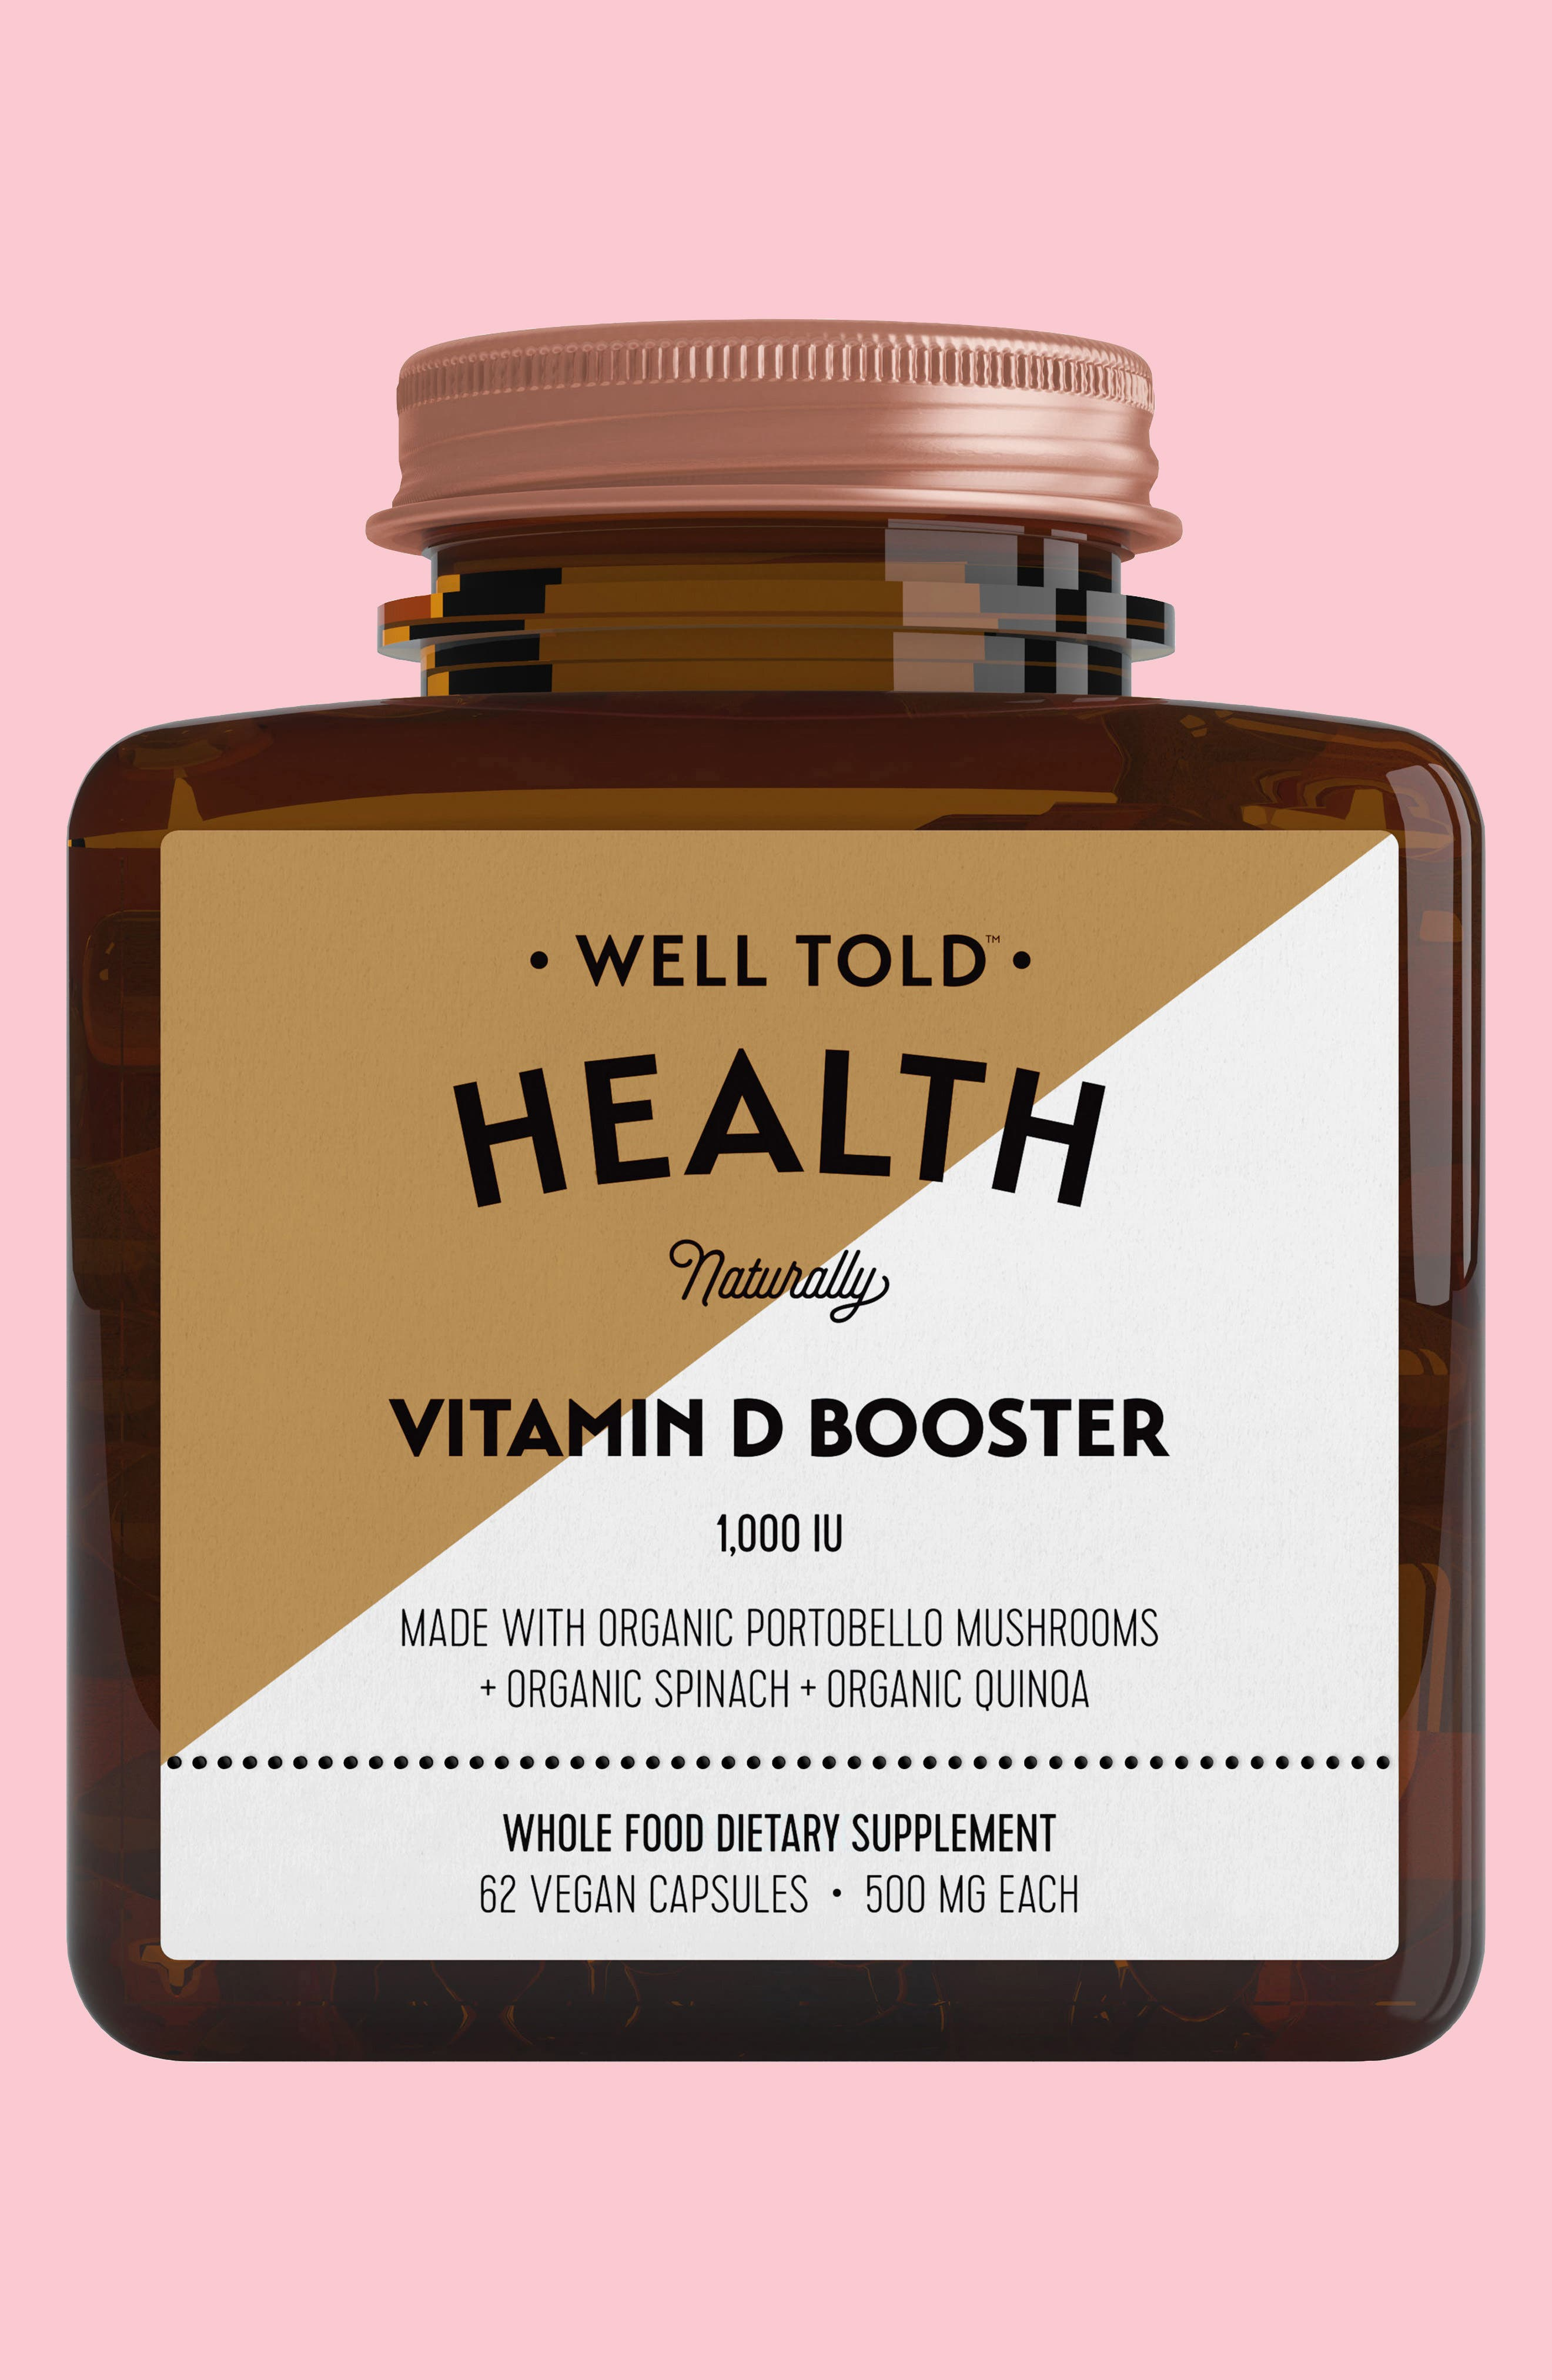 Vitamin D Booster Dietary Supplement,                         Main,                         color, 200